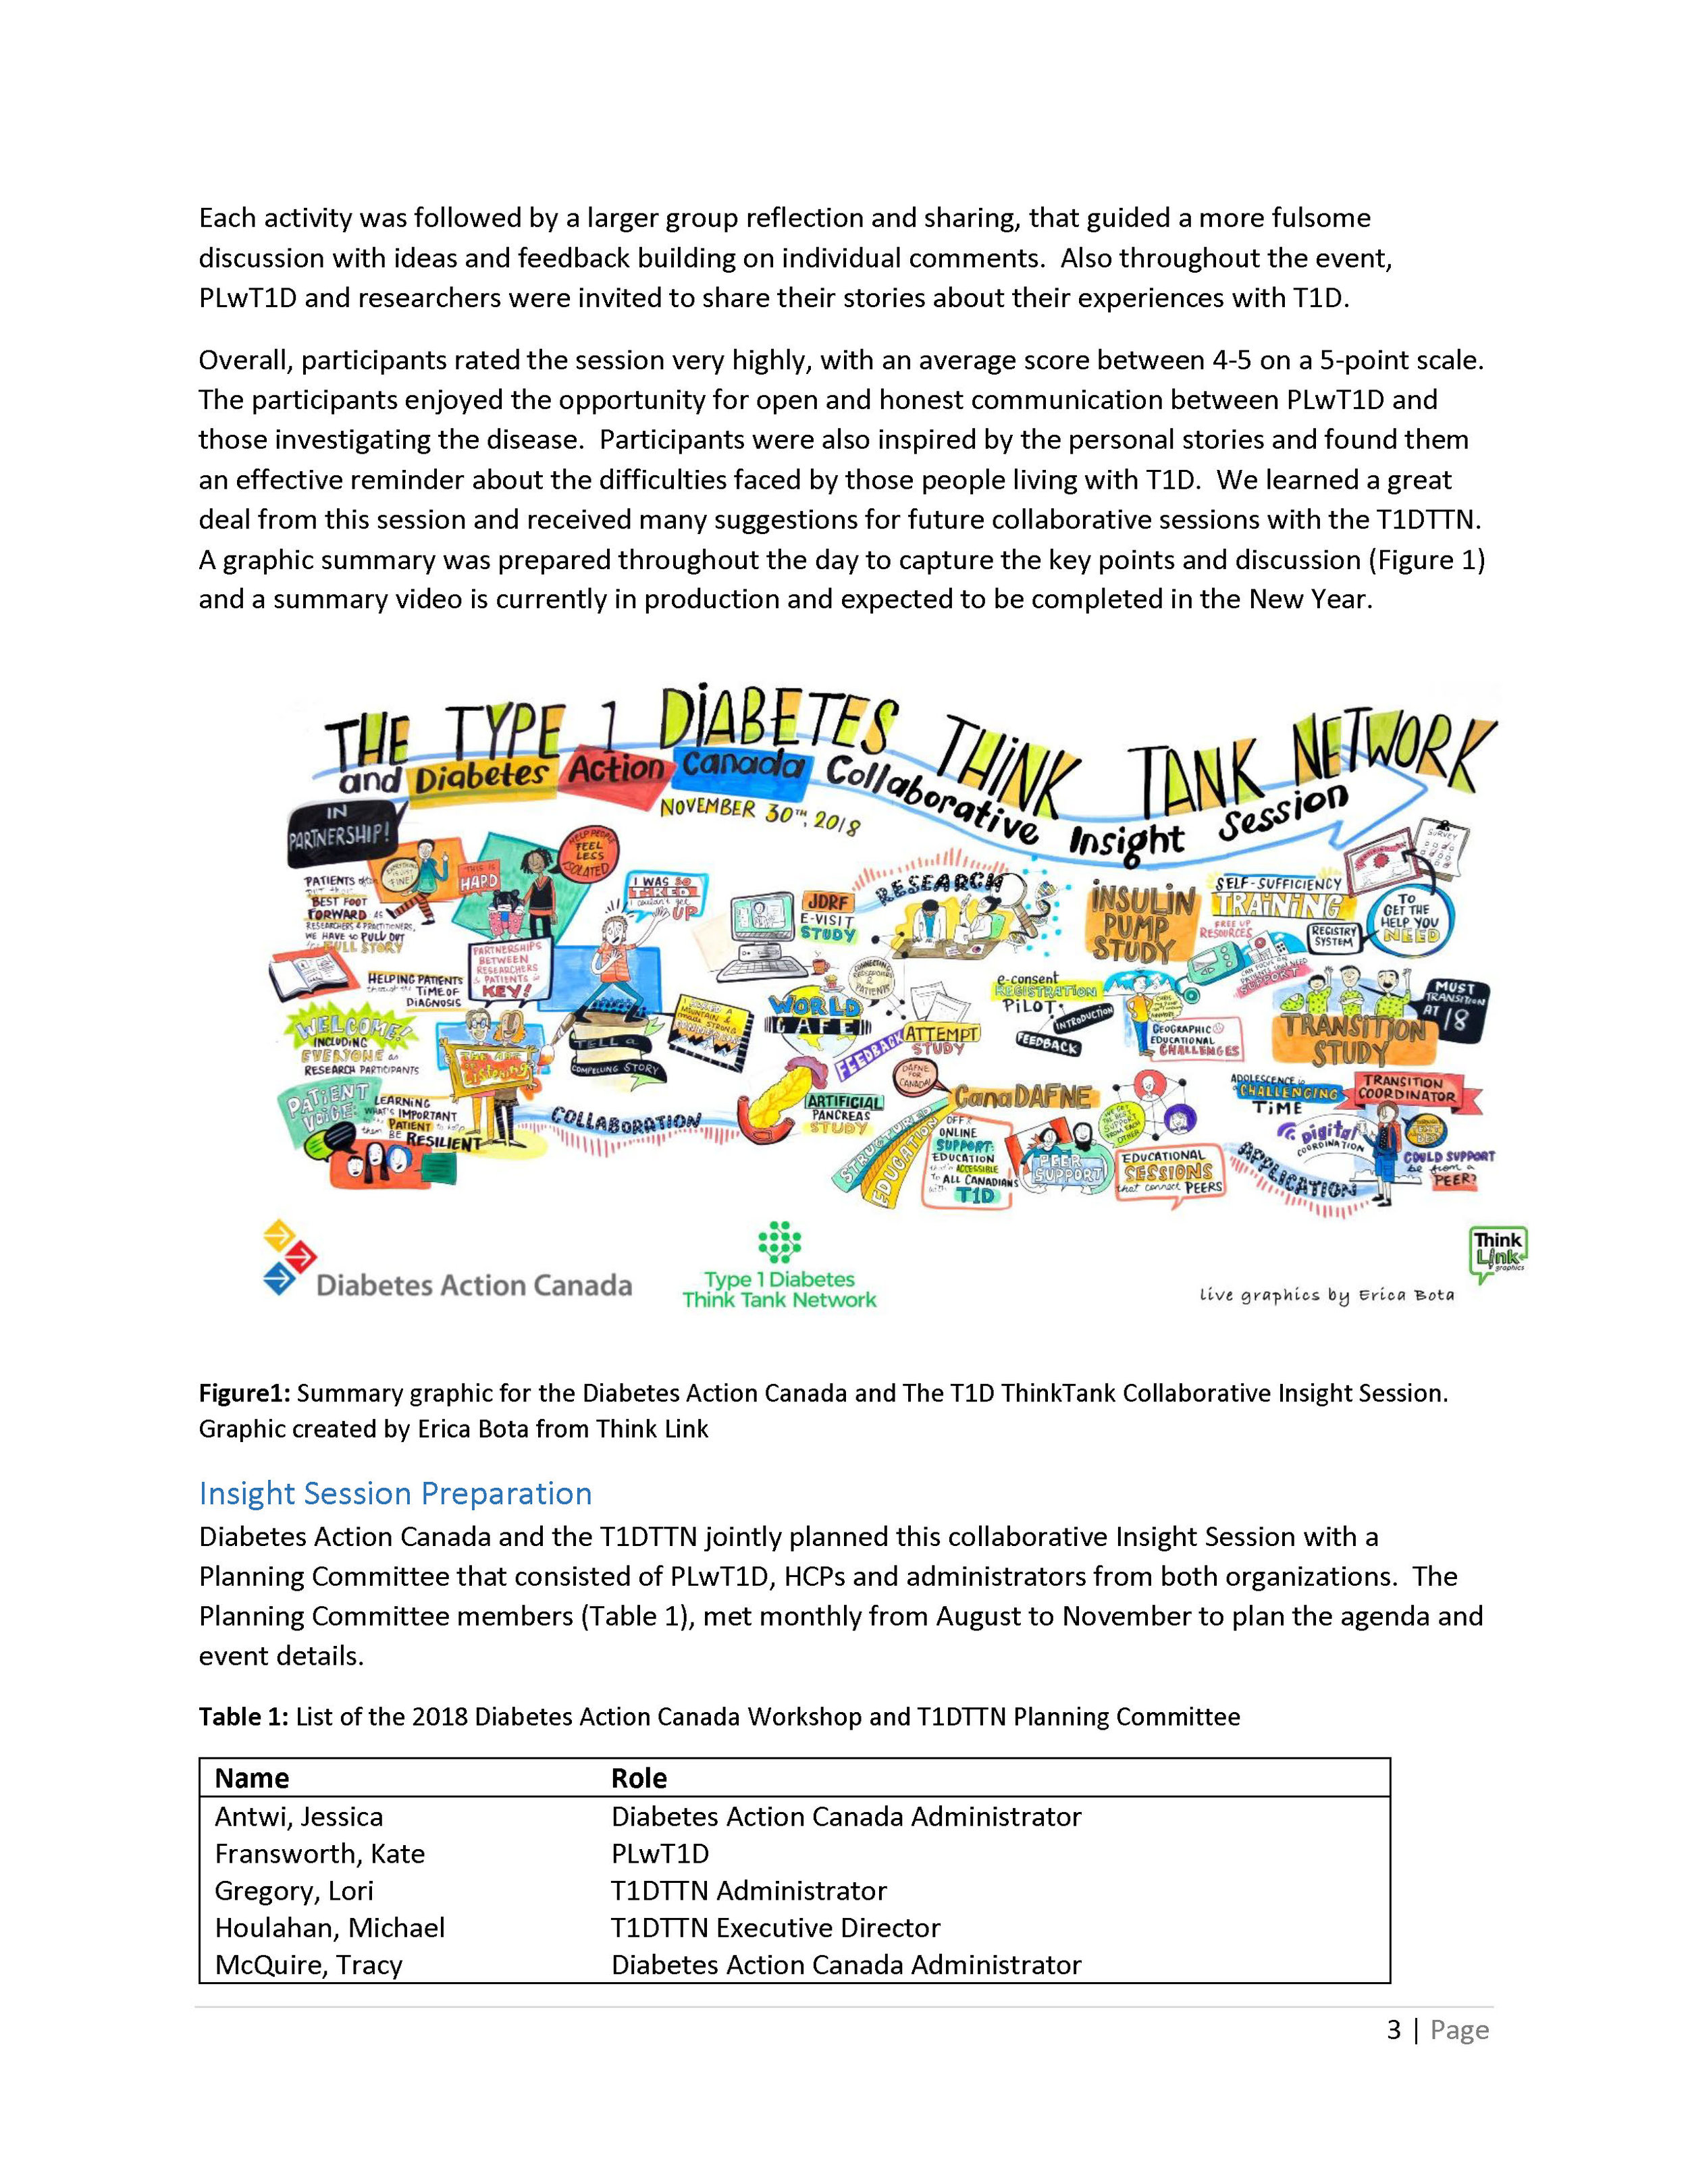 T1D Think Tank and Diabetes Action Canada Insight Session Report FINAL_Page_4.jpg